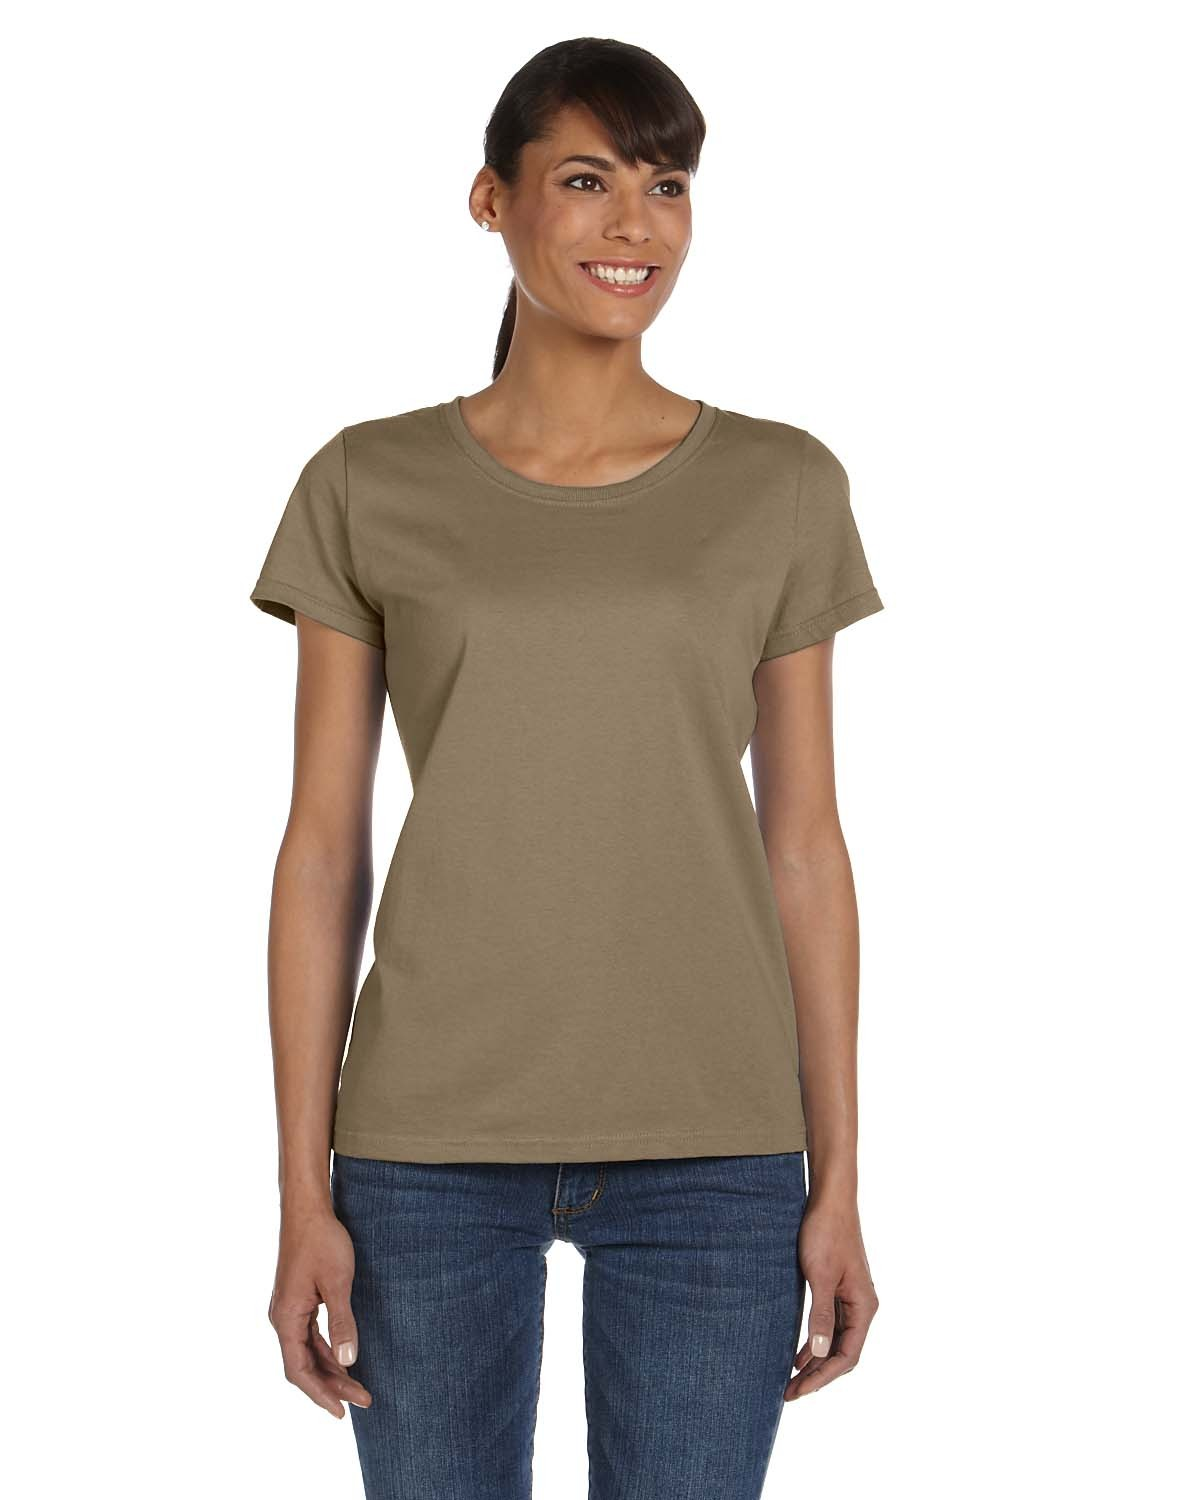 L3930R Fruit of the Loom KHAKI